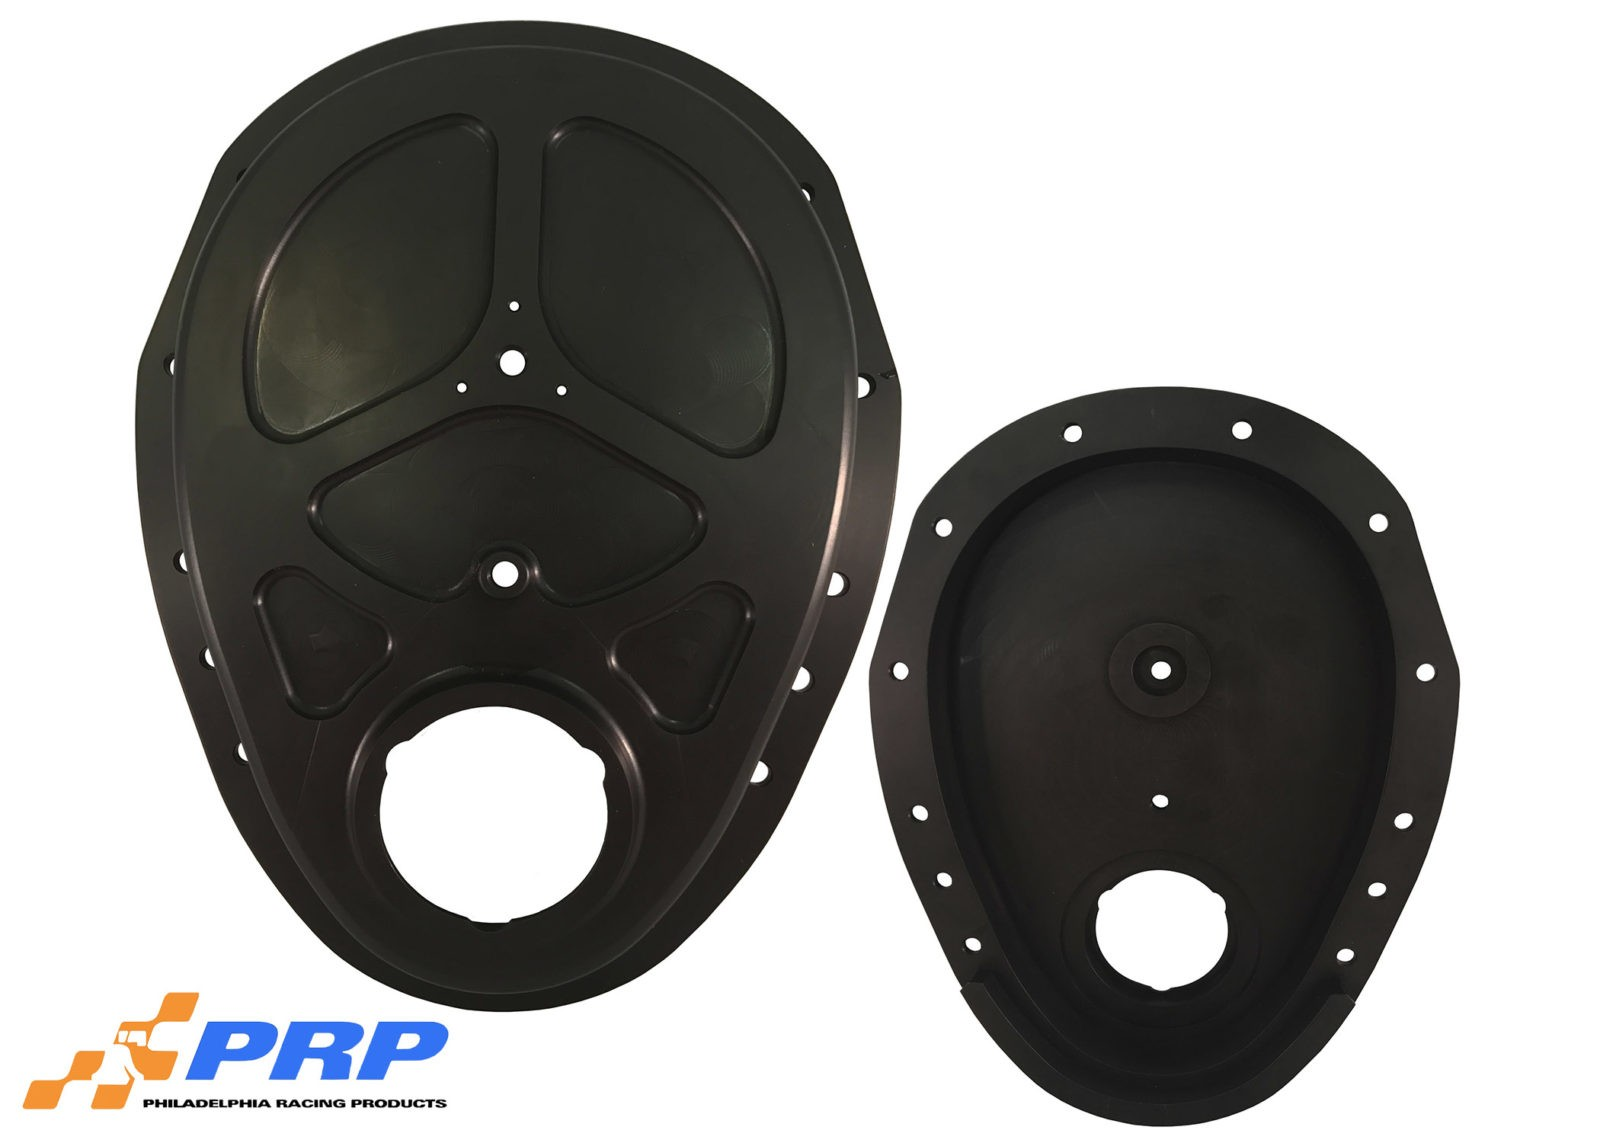 Black Billet Timing Cover Front and Back made by PRP Racing Products